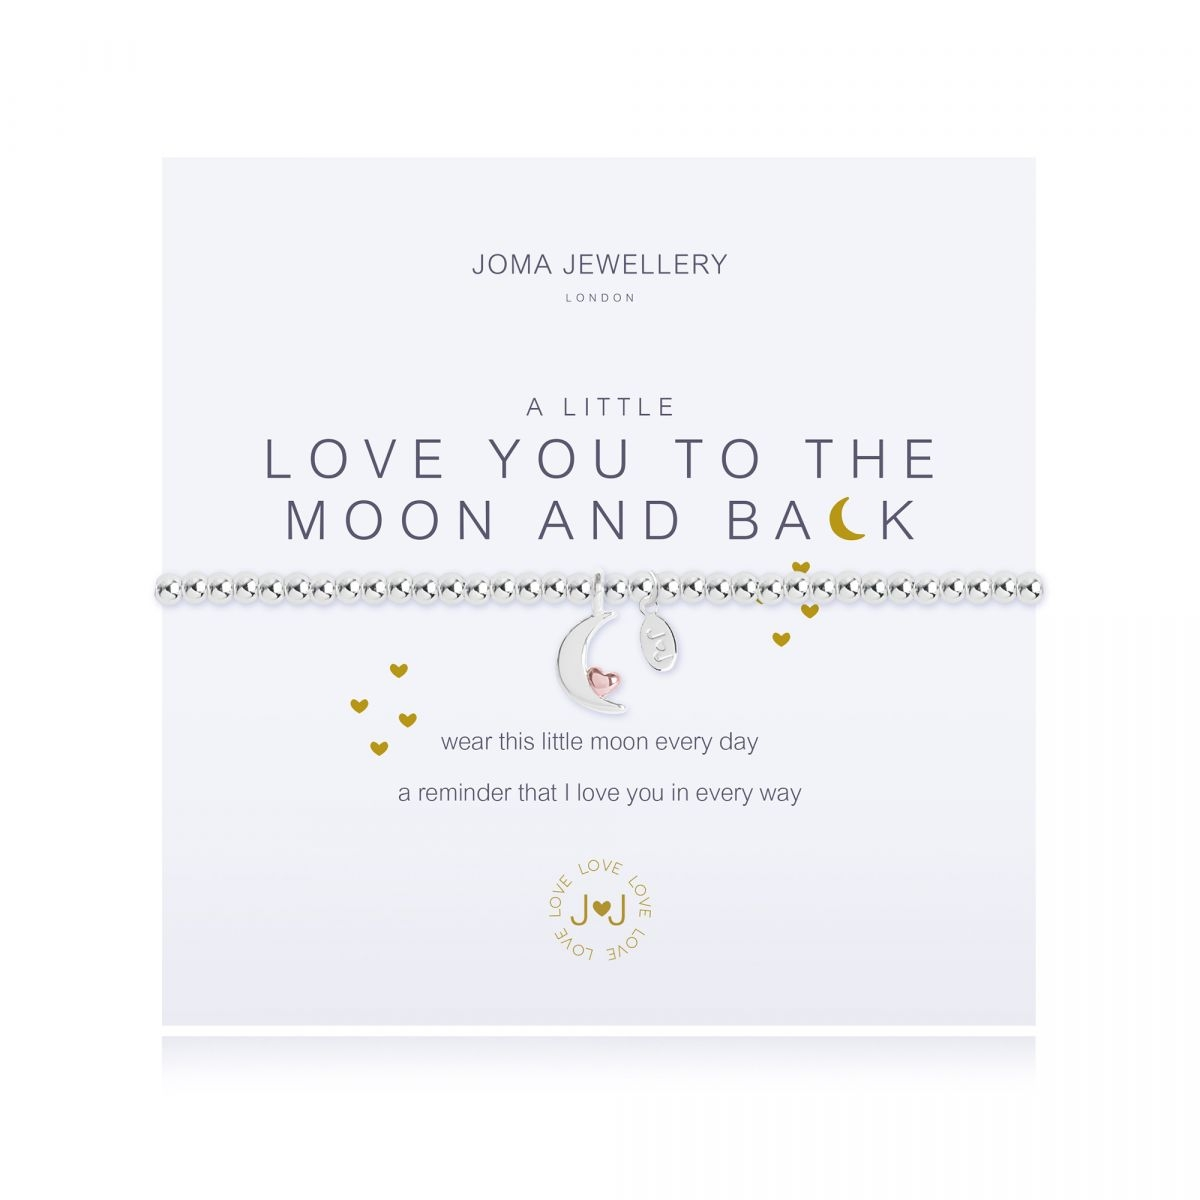 Joma Jewellery A Little 'Love You to the Moon and Back' Bracelet